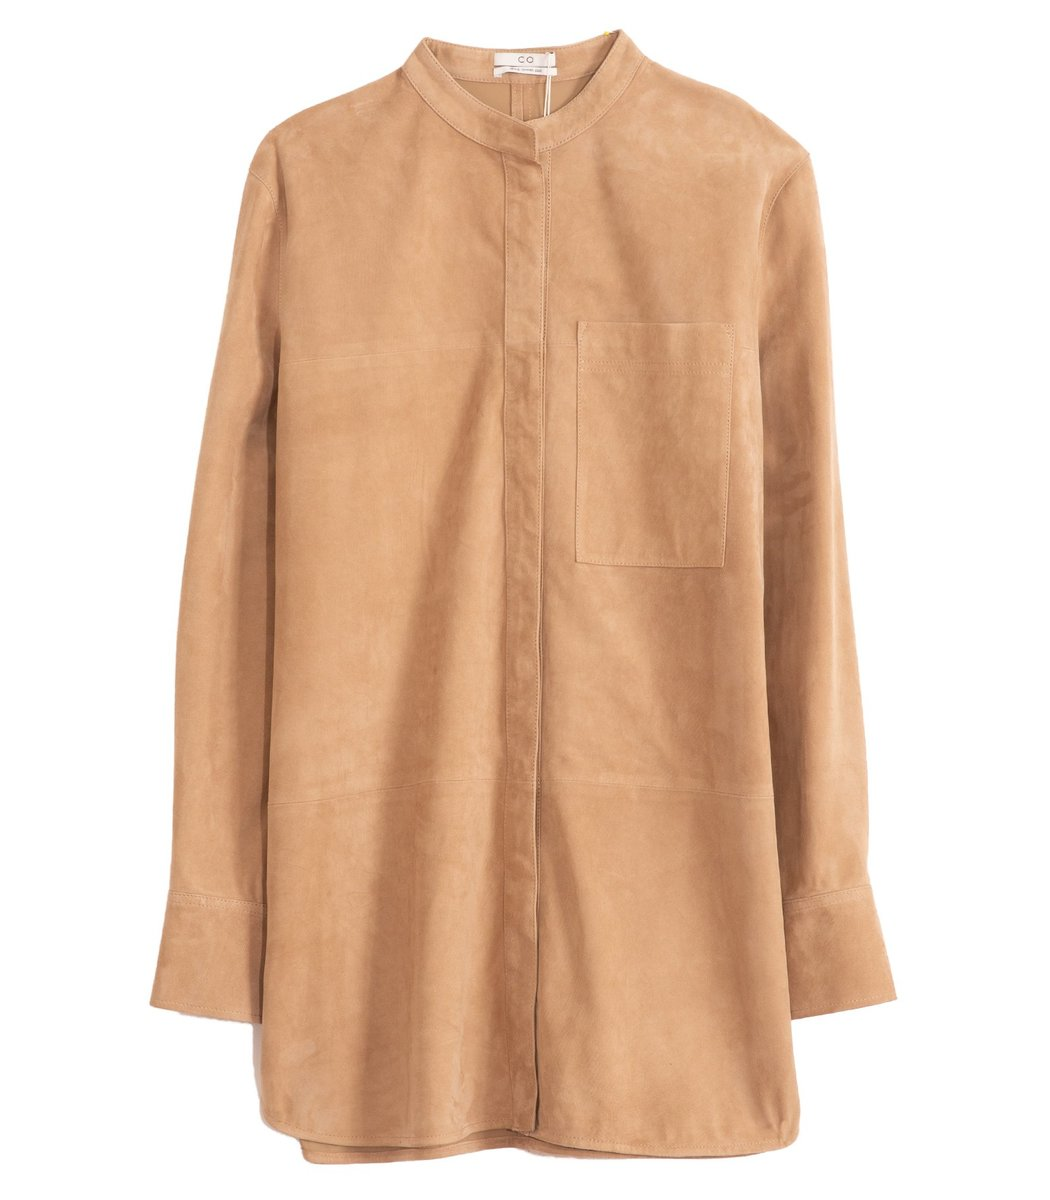 Co Suede Button Down Shirt In Taupe In Neutrals